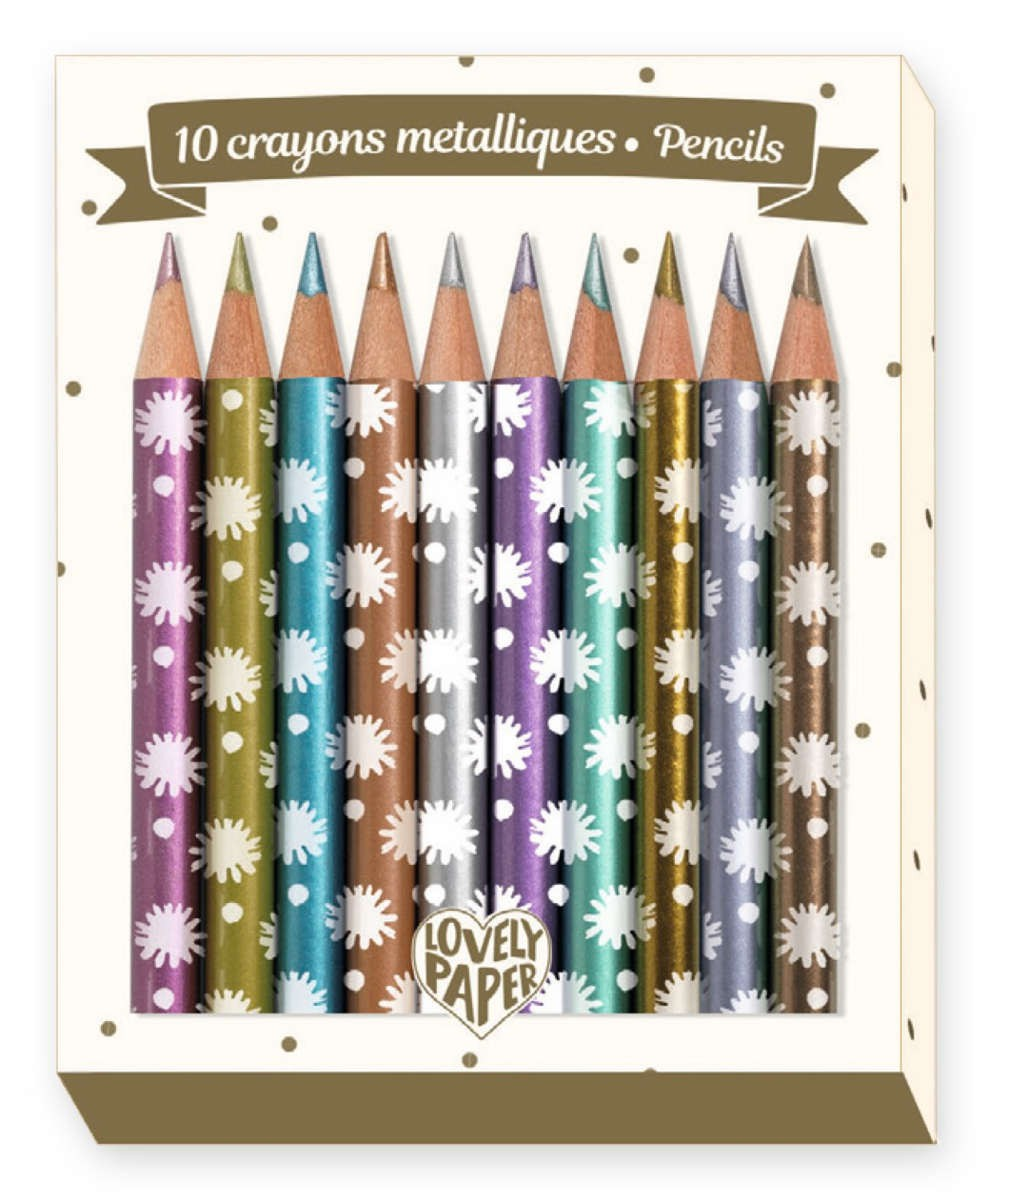 Lovely Paper - 10 Mini Lápices Chic